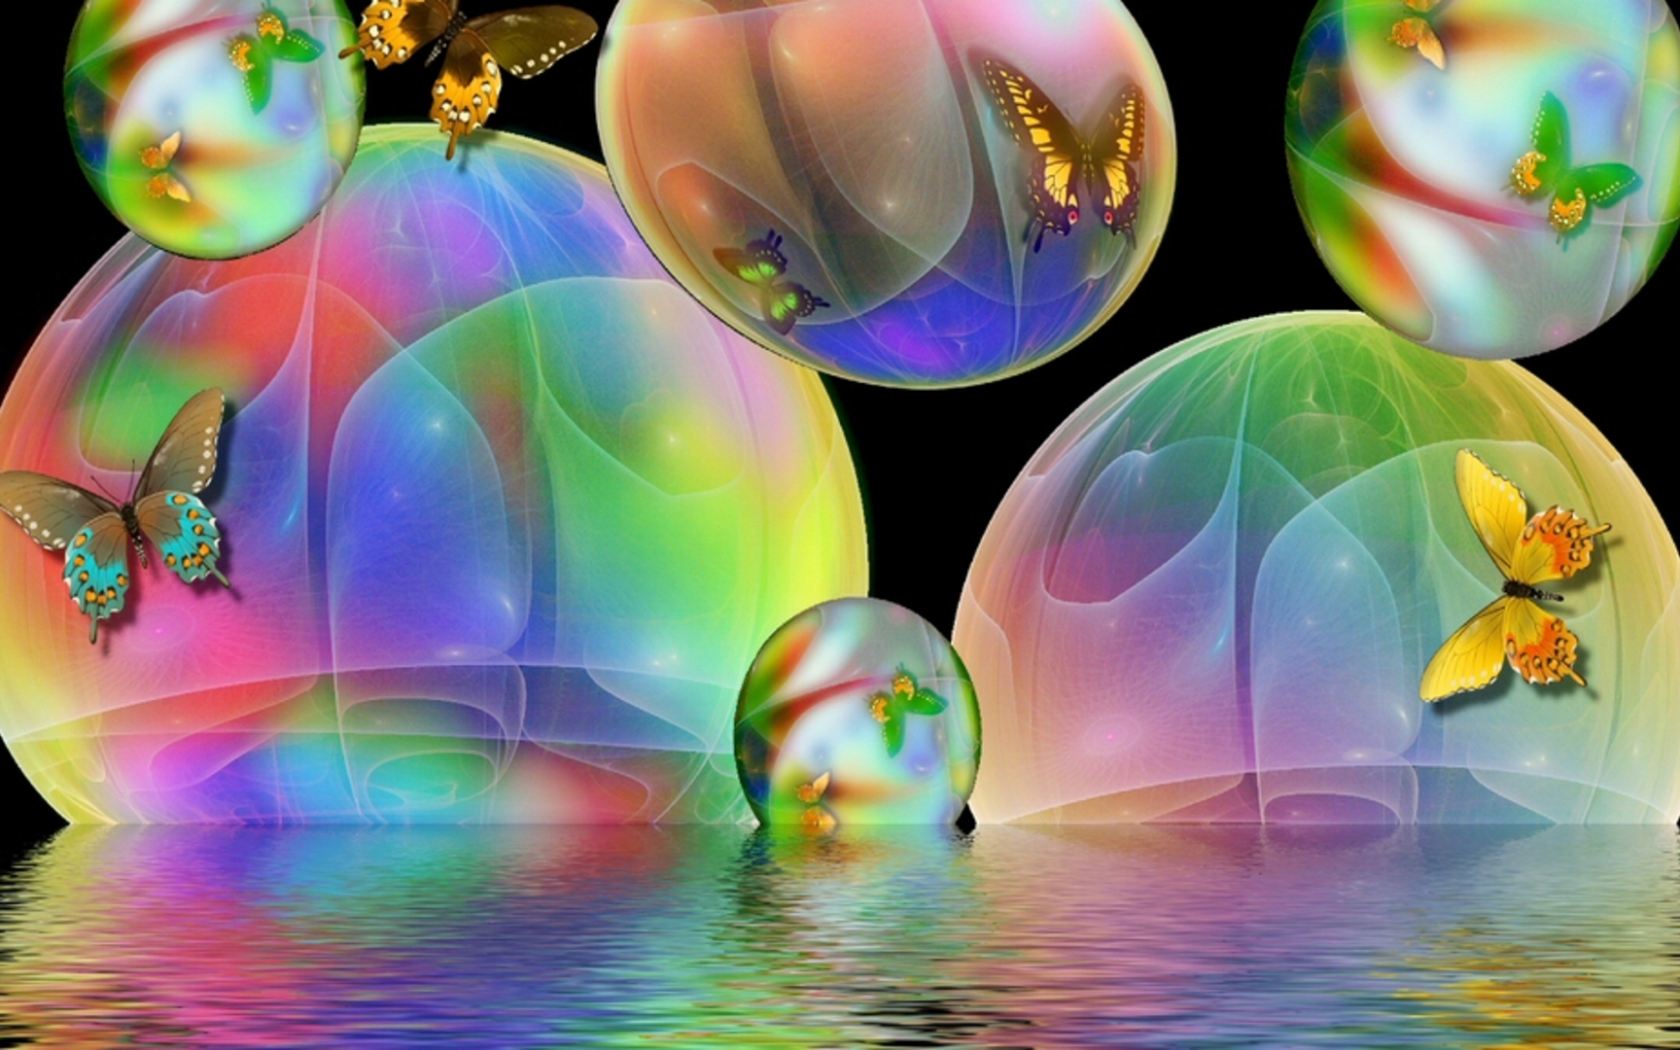 Bubbles Animated Wallpaper, 43 Hd Bubbles Animated - Animated Butterfly Wallpaper Desktop , HD Wallpaper & Backgrounds